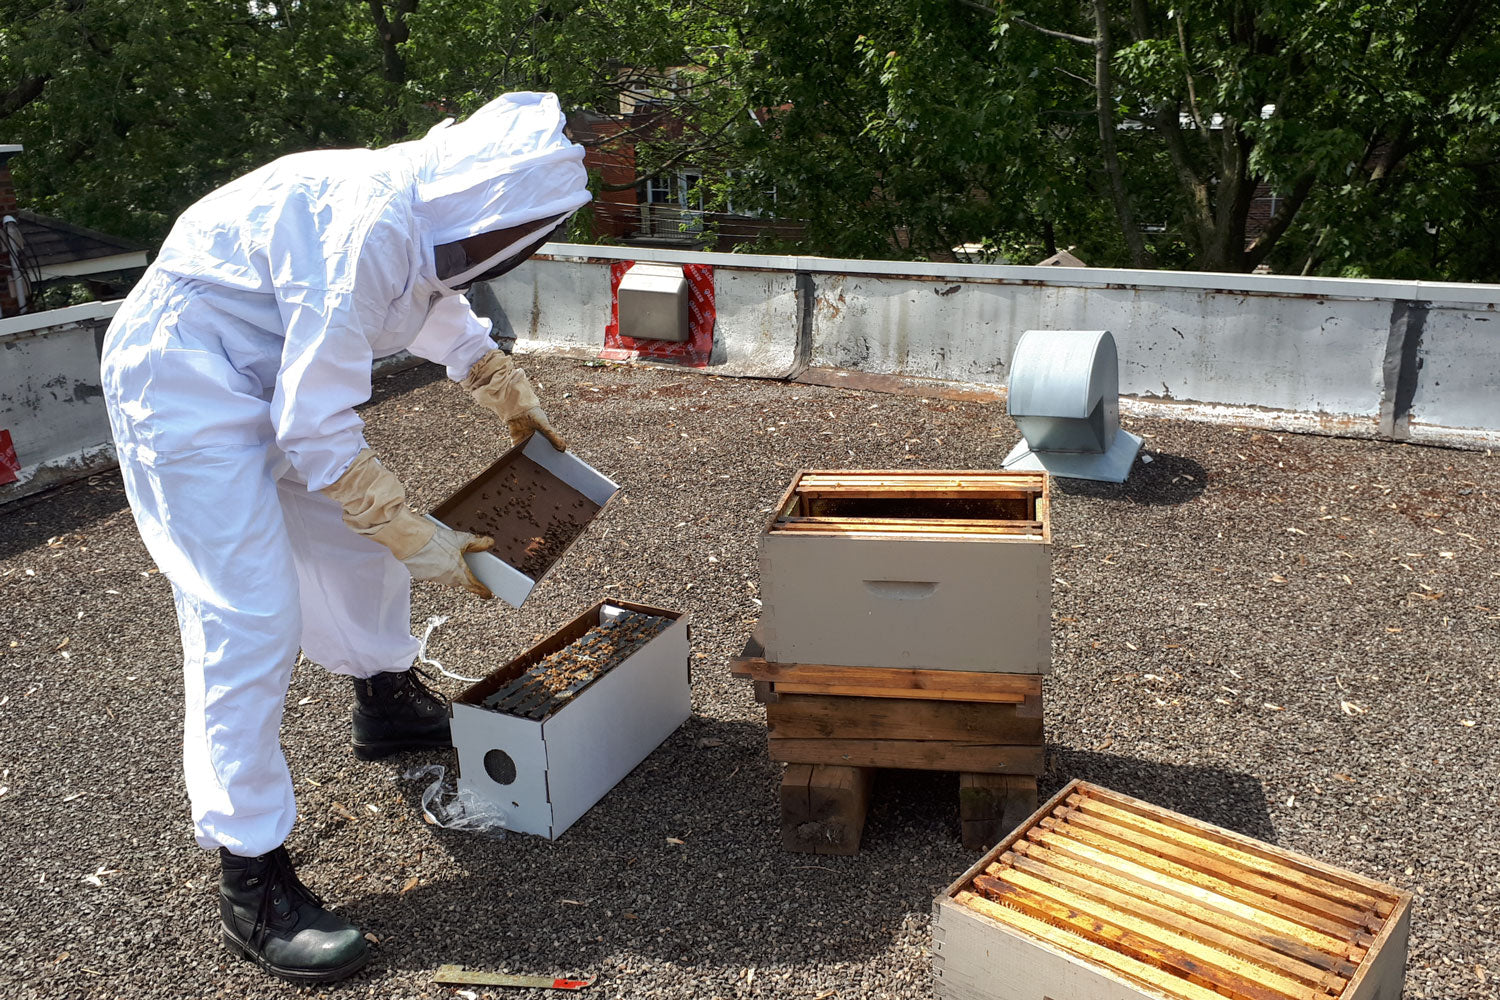 Moving bees from nuc box into hive